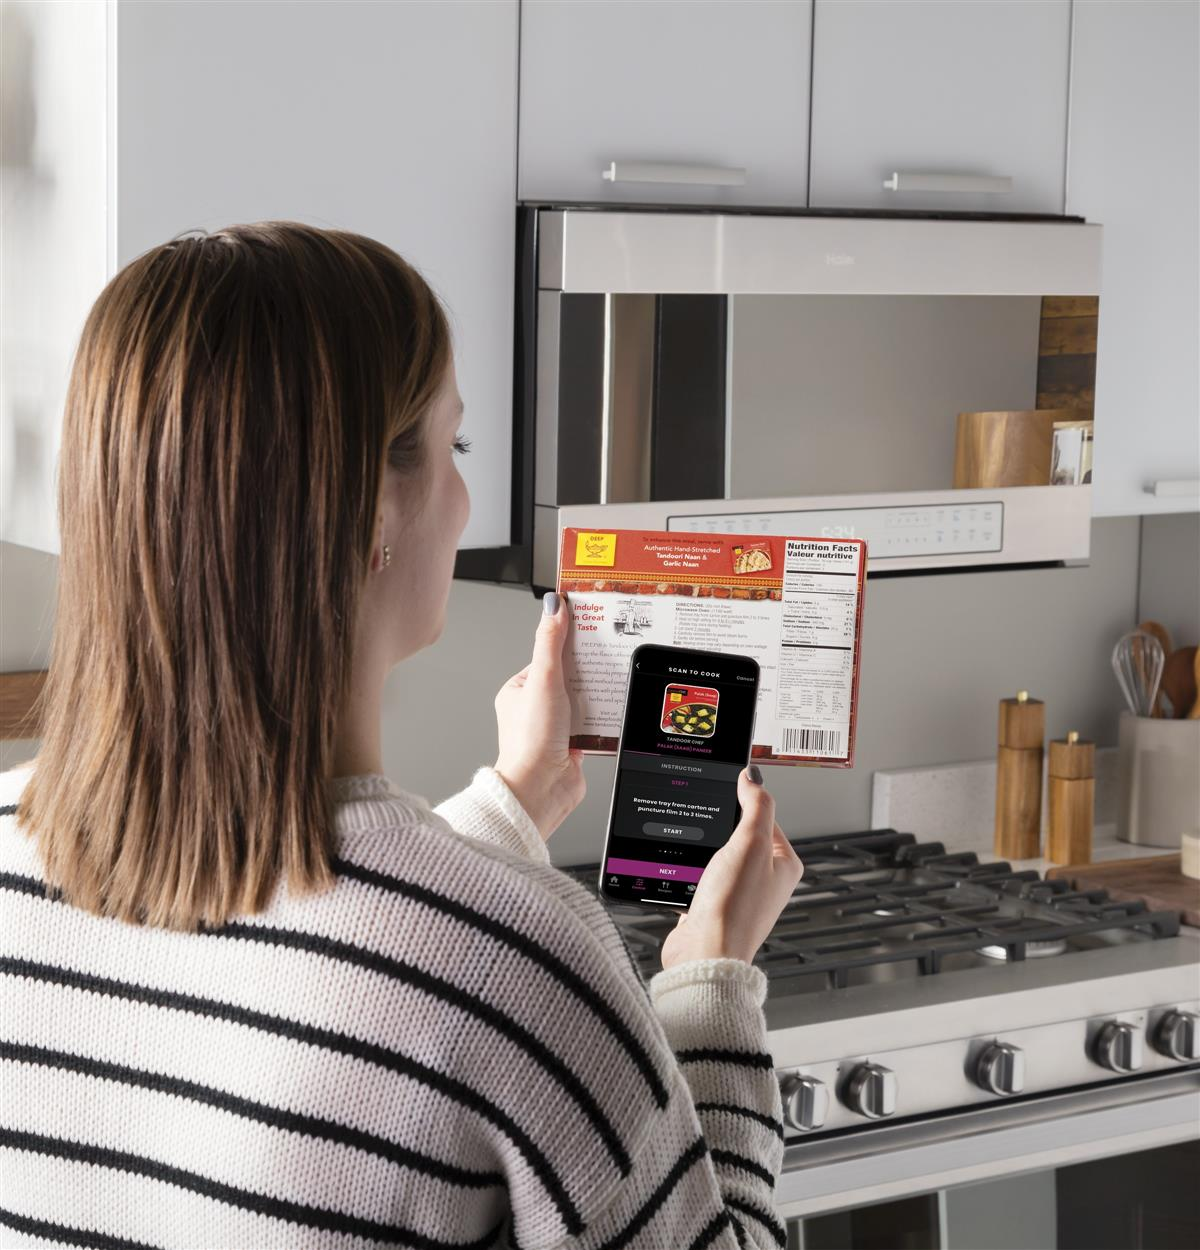 Simply scan your food's barcode and your microwave will prepare it exactly how the manufacturer intended. Hundreds of foods currently work with this innovative technology, with more being added to the list all the time. Nom!